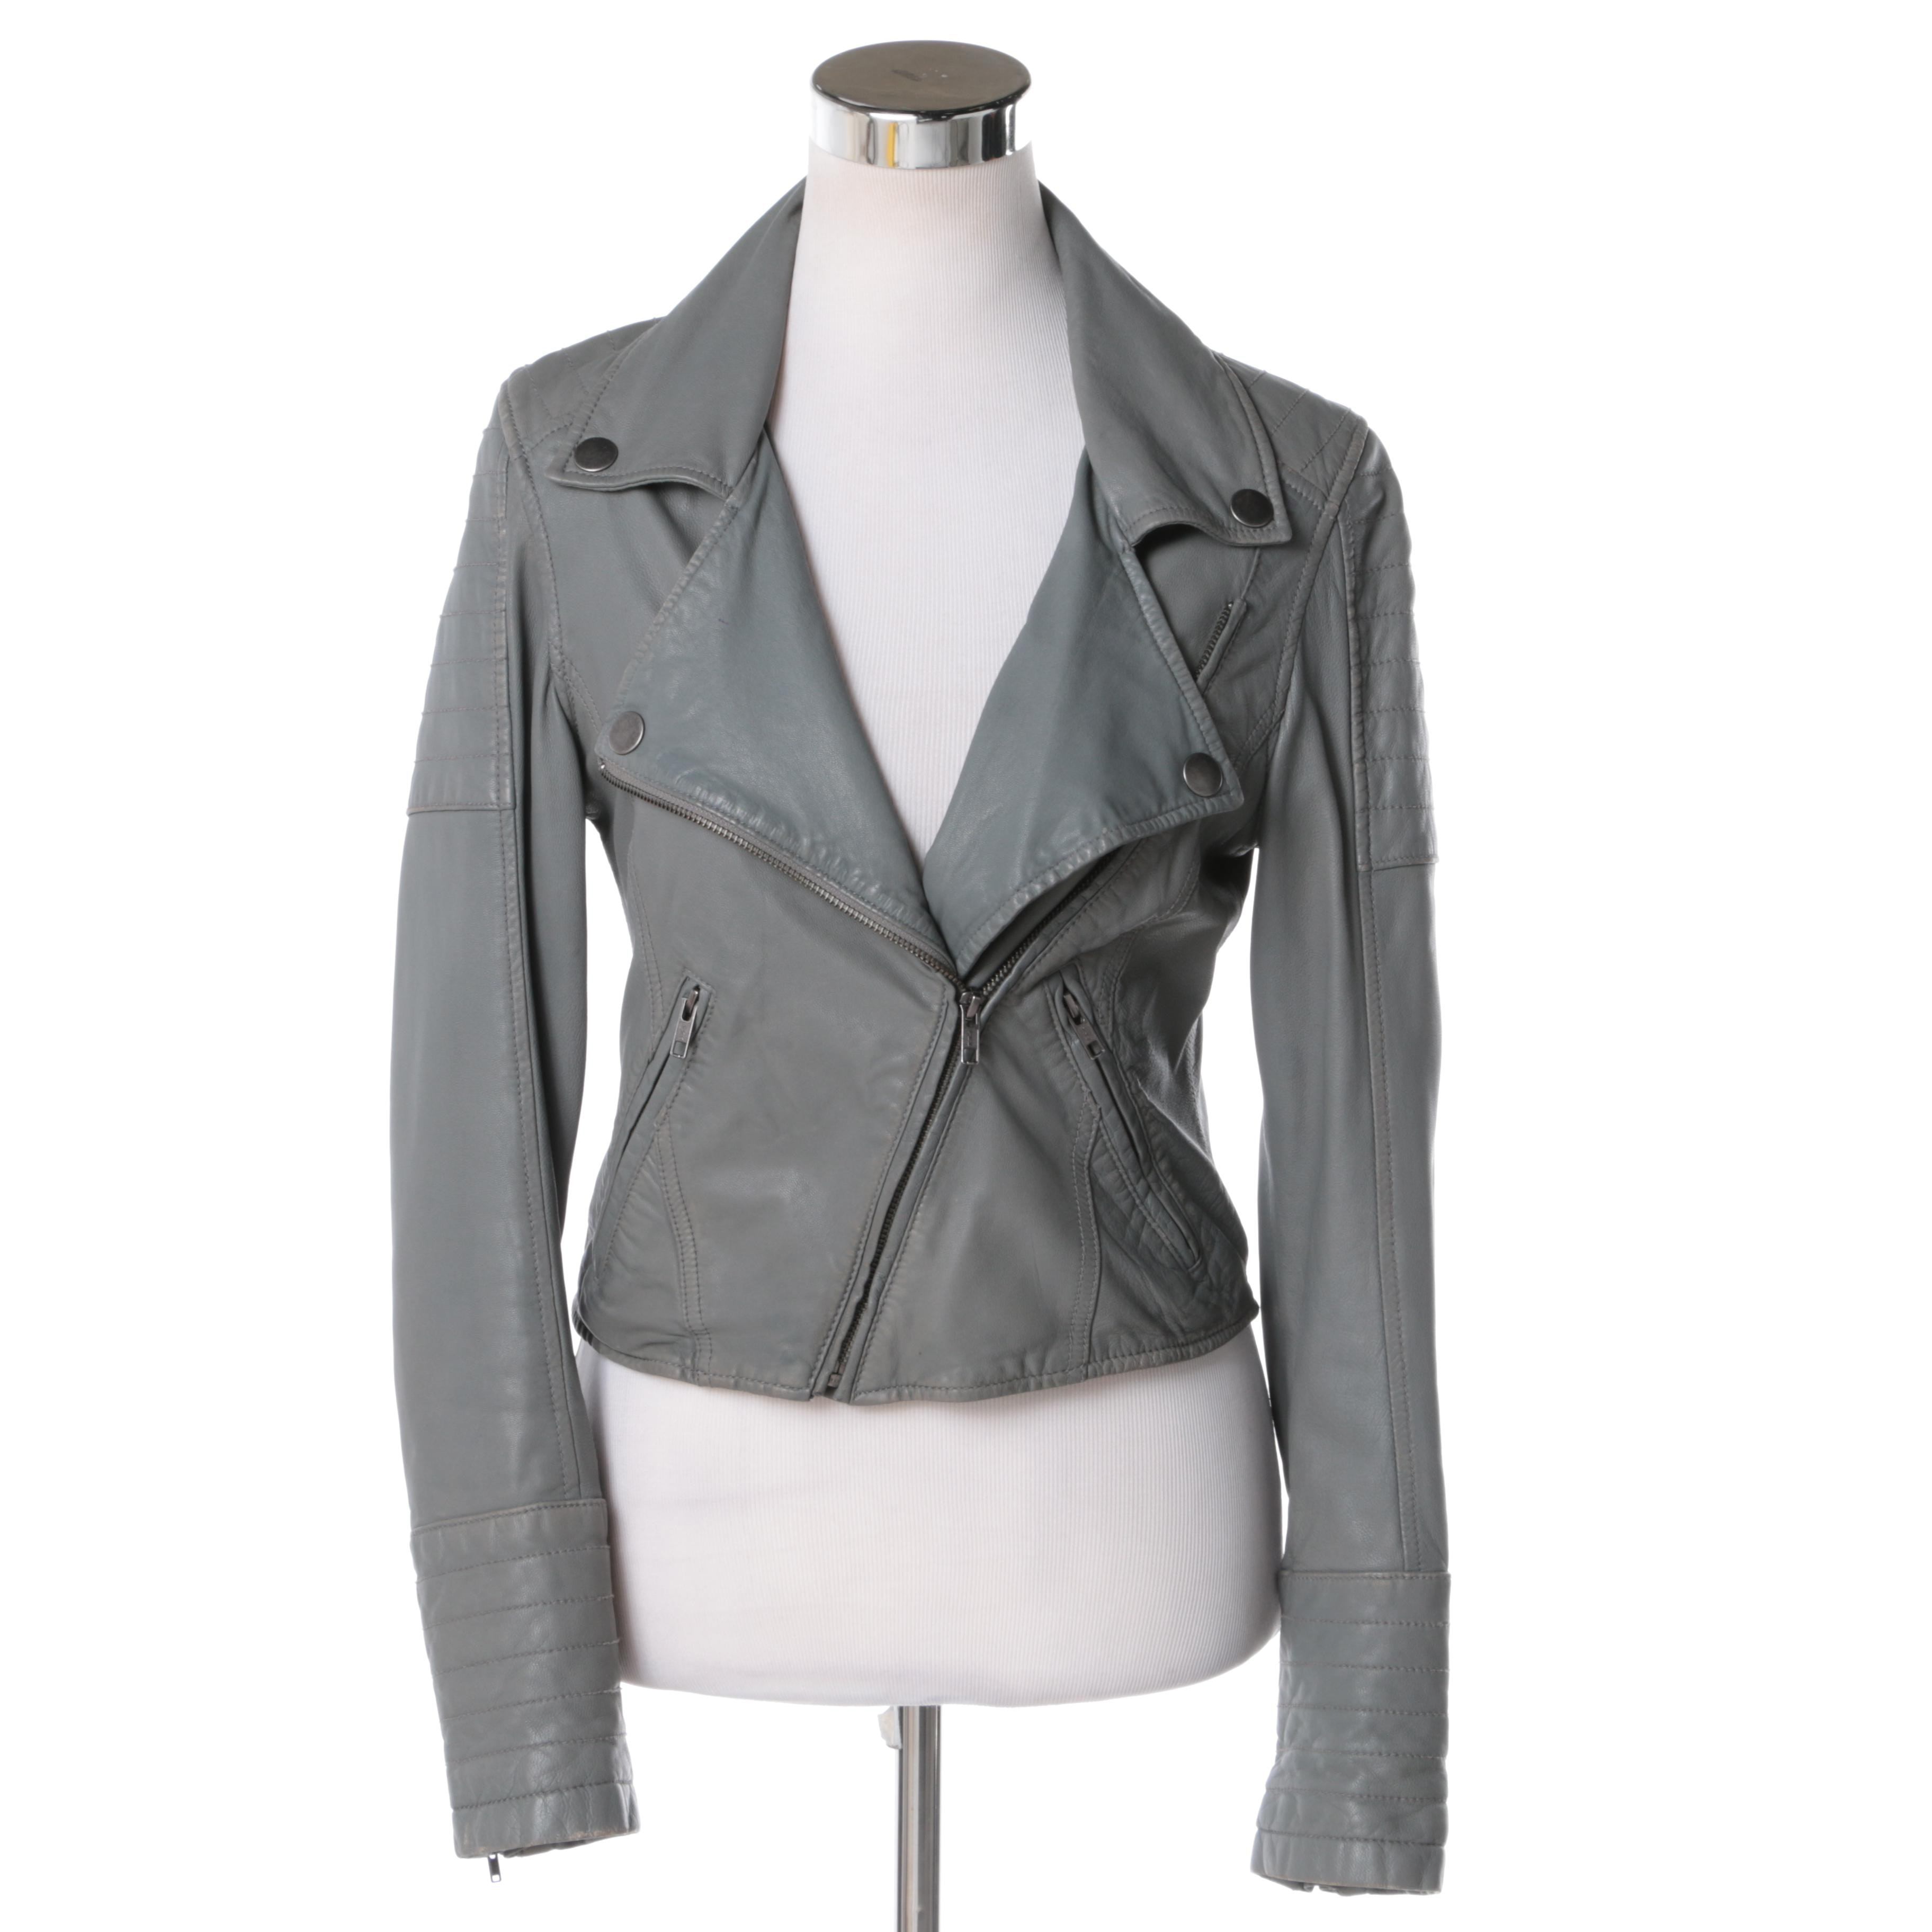 Women's Mike & Chris Grey Leather Motorcycle Jacket